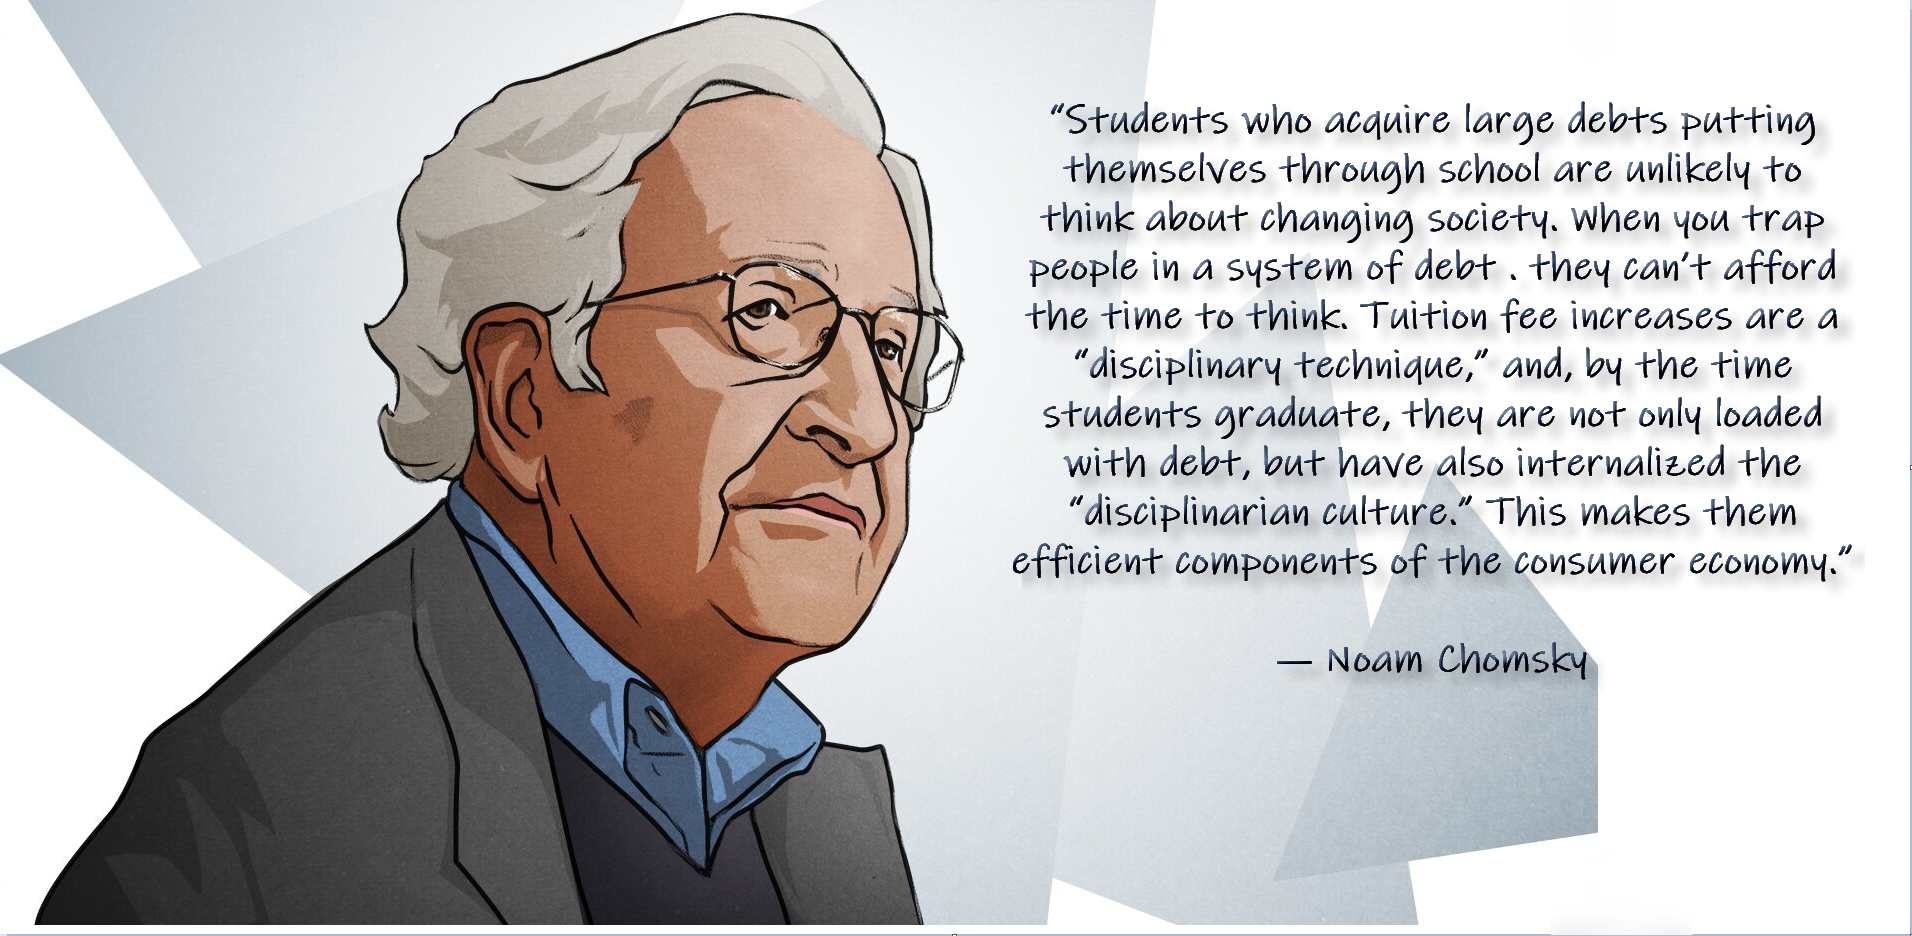 """Students who acquire large debts putting themselves through school are unlikely to think about changing society. When you trap people in a system of debt . they can't afford the time to think…. ― Noam Chomsky [1912 x 936]"